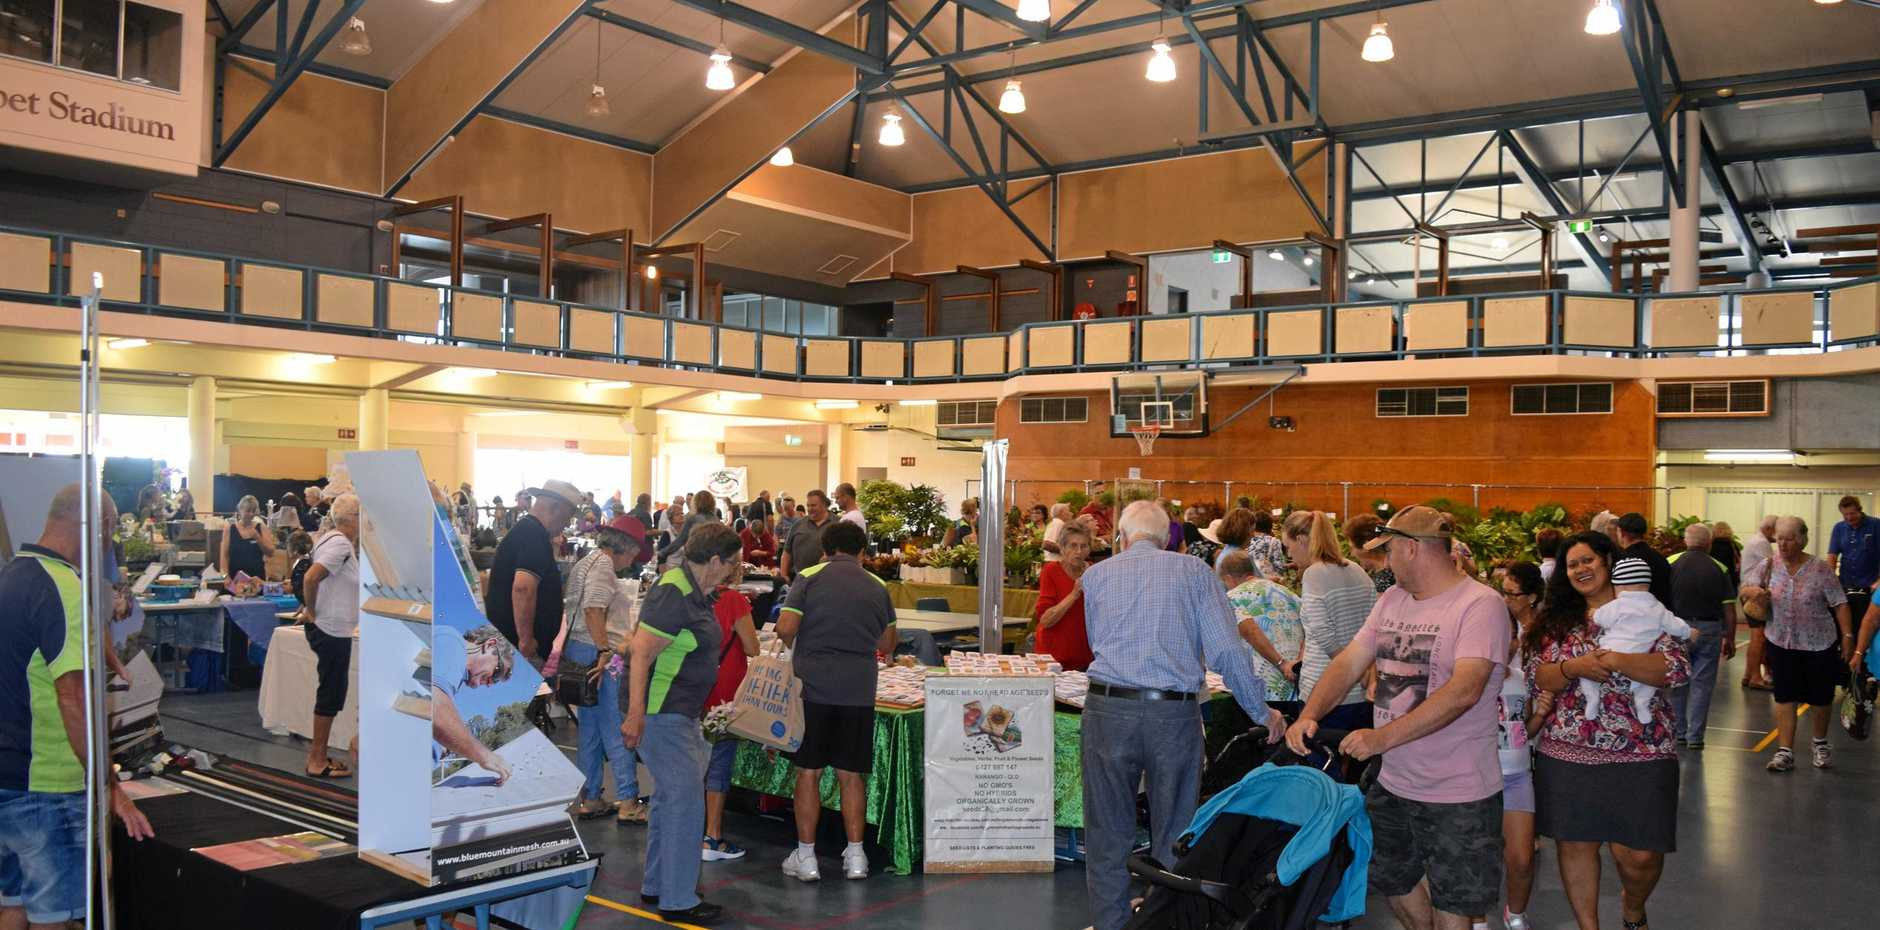 Crowds mill around at the Gympie Garden Expo Day 1 2018